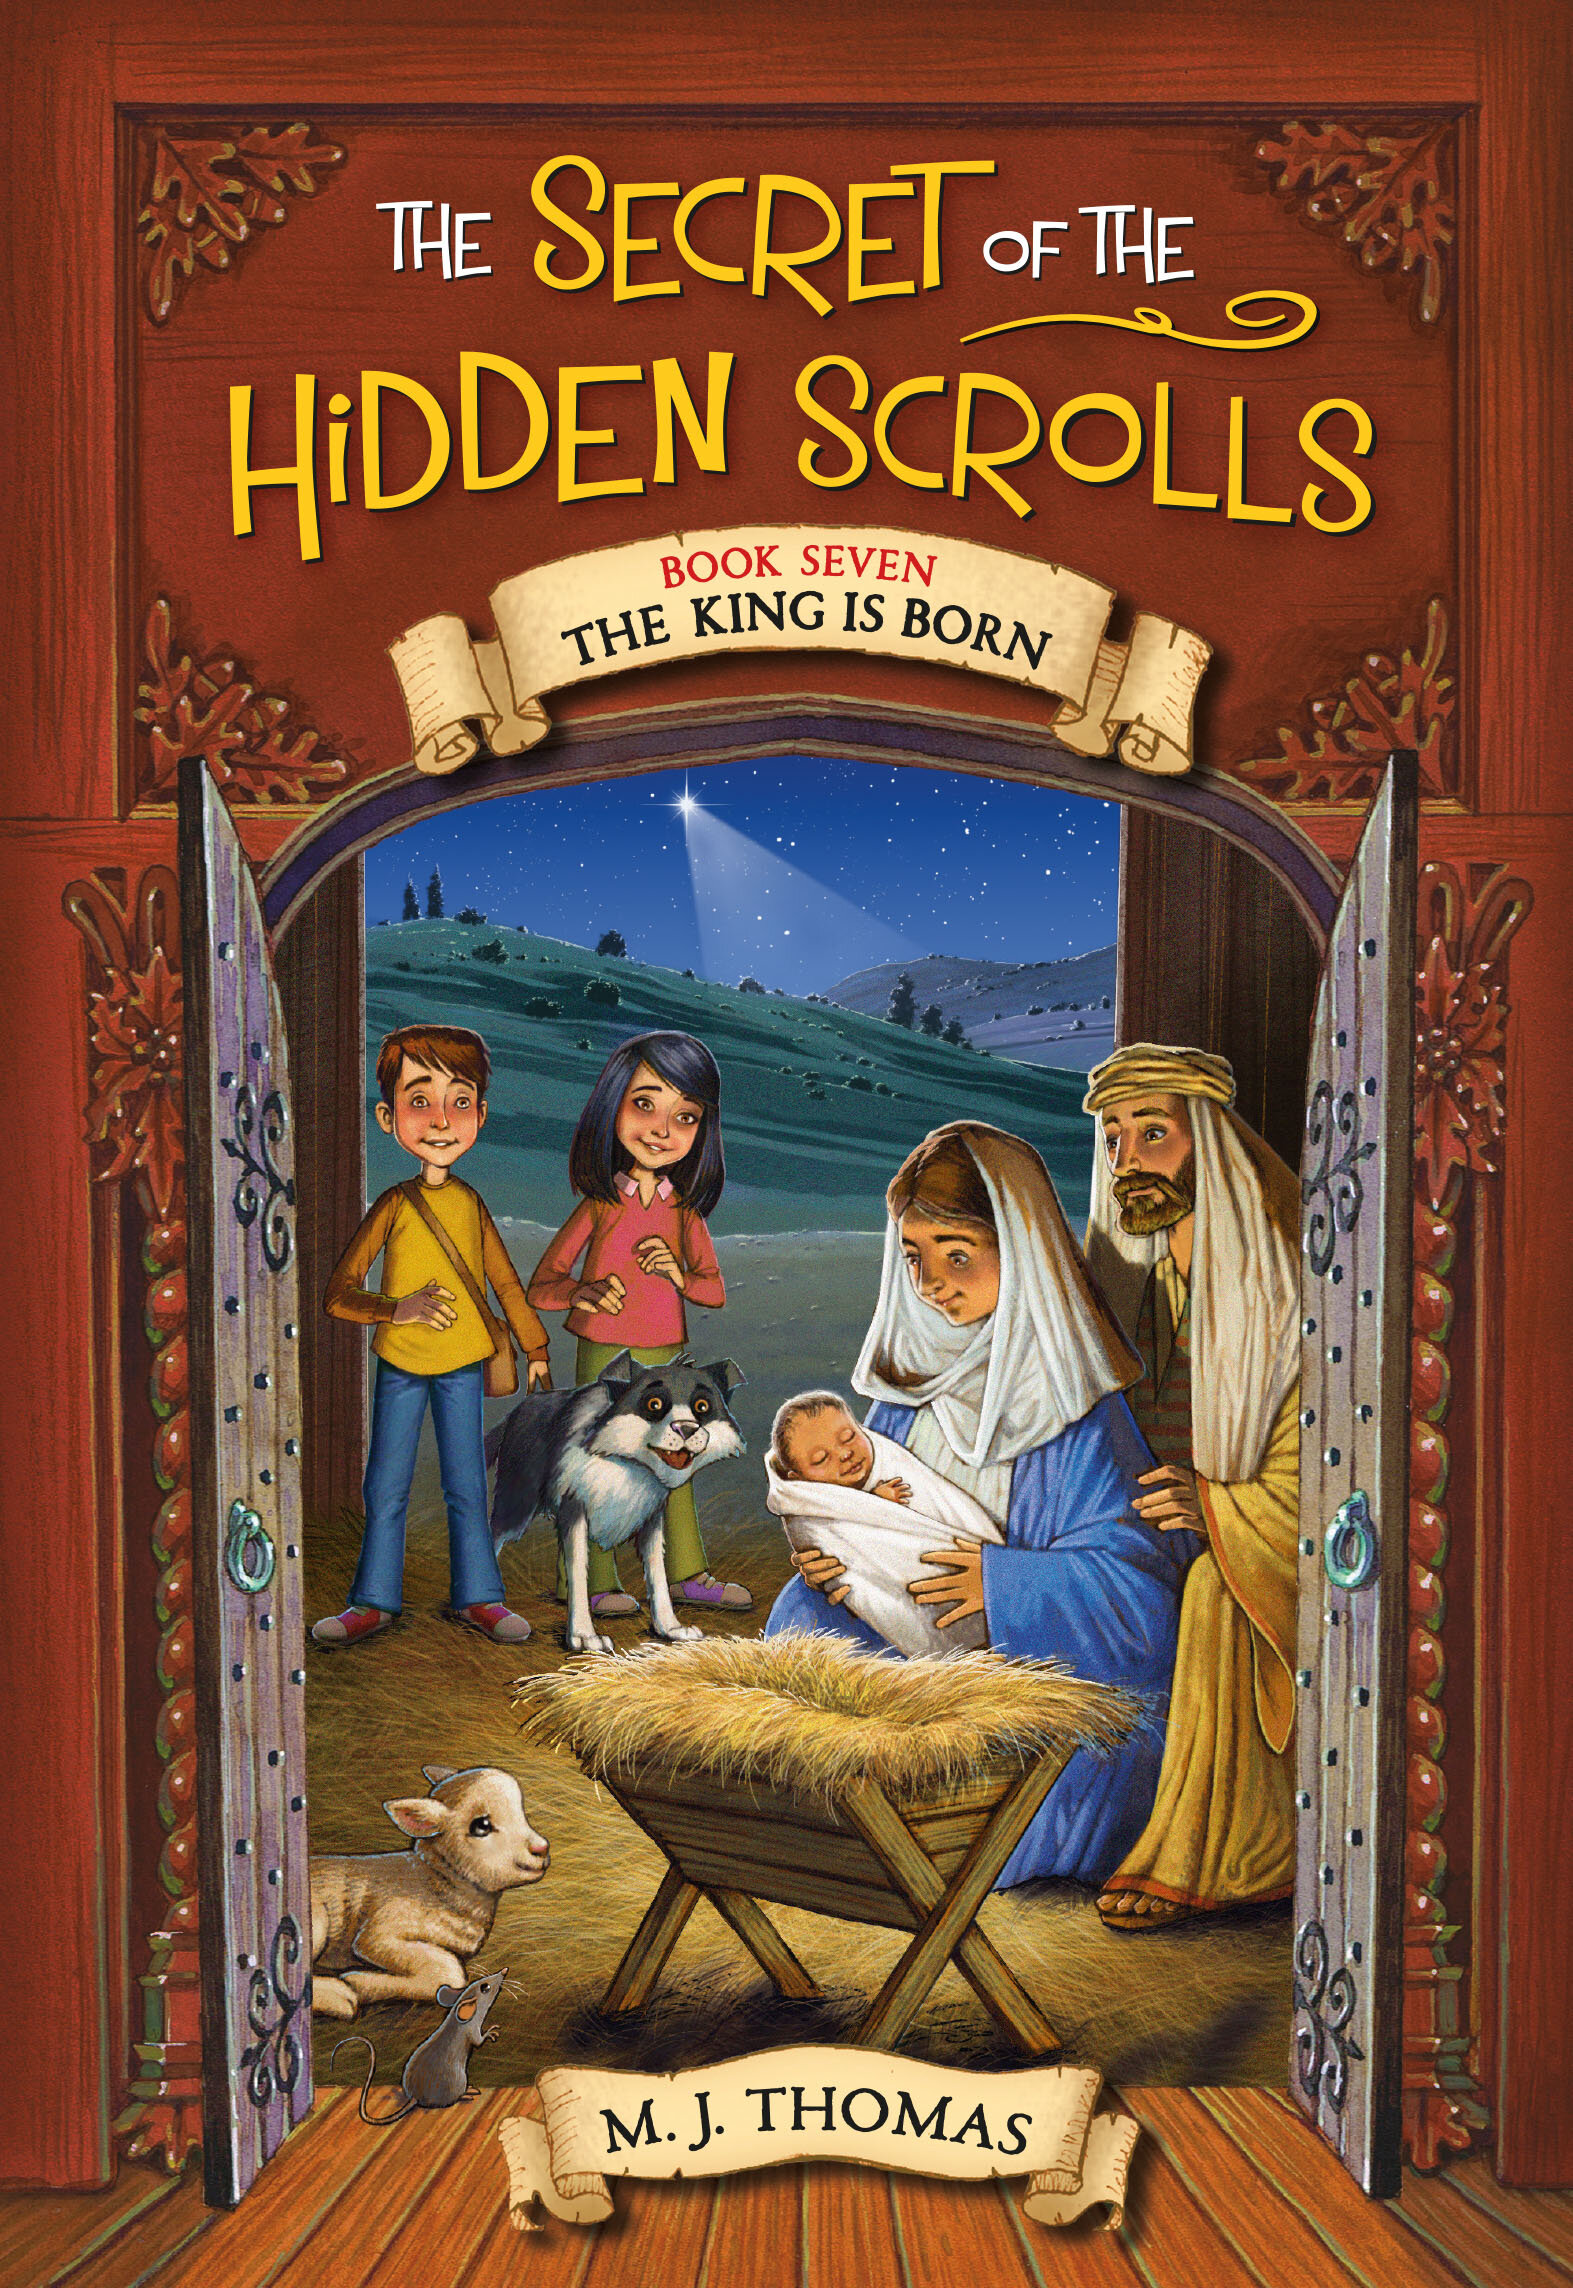 Big Announcement!Book 7 Now Available! - In The King is Born, Peter, Mary, and Hank journey back in time to Bethlehem, where the Roman Empire rules and a new King is about to be born. Follow along as the time-traveling trio discovers the newborn King, helps the Magi, and runs into a dangerous Roman Commander.